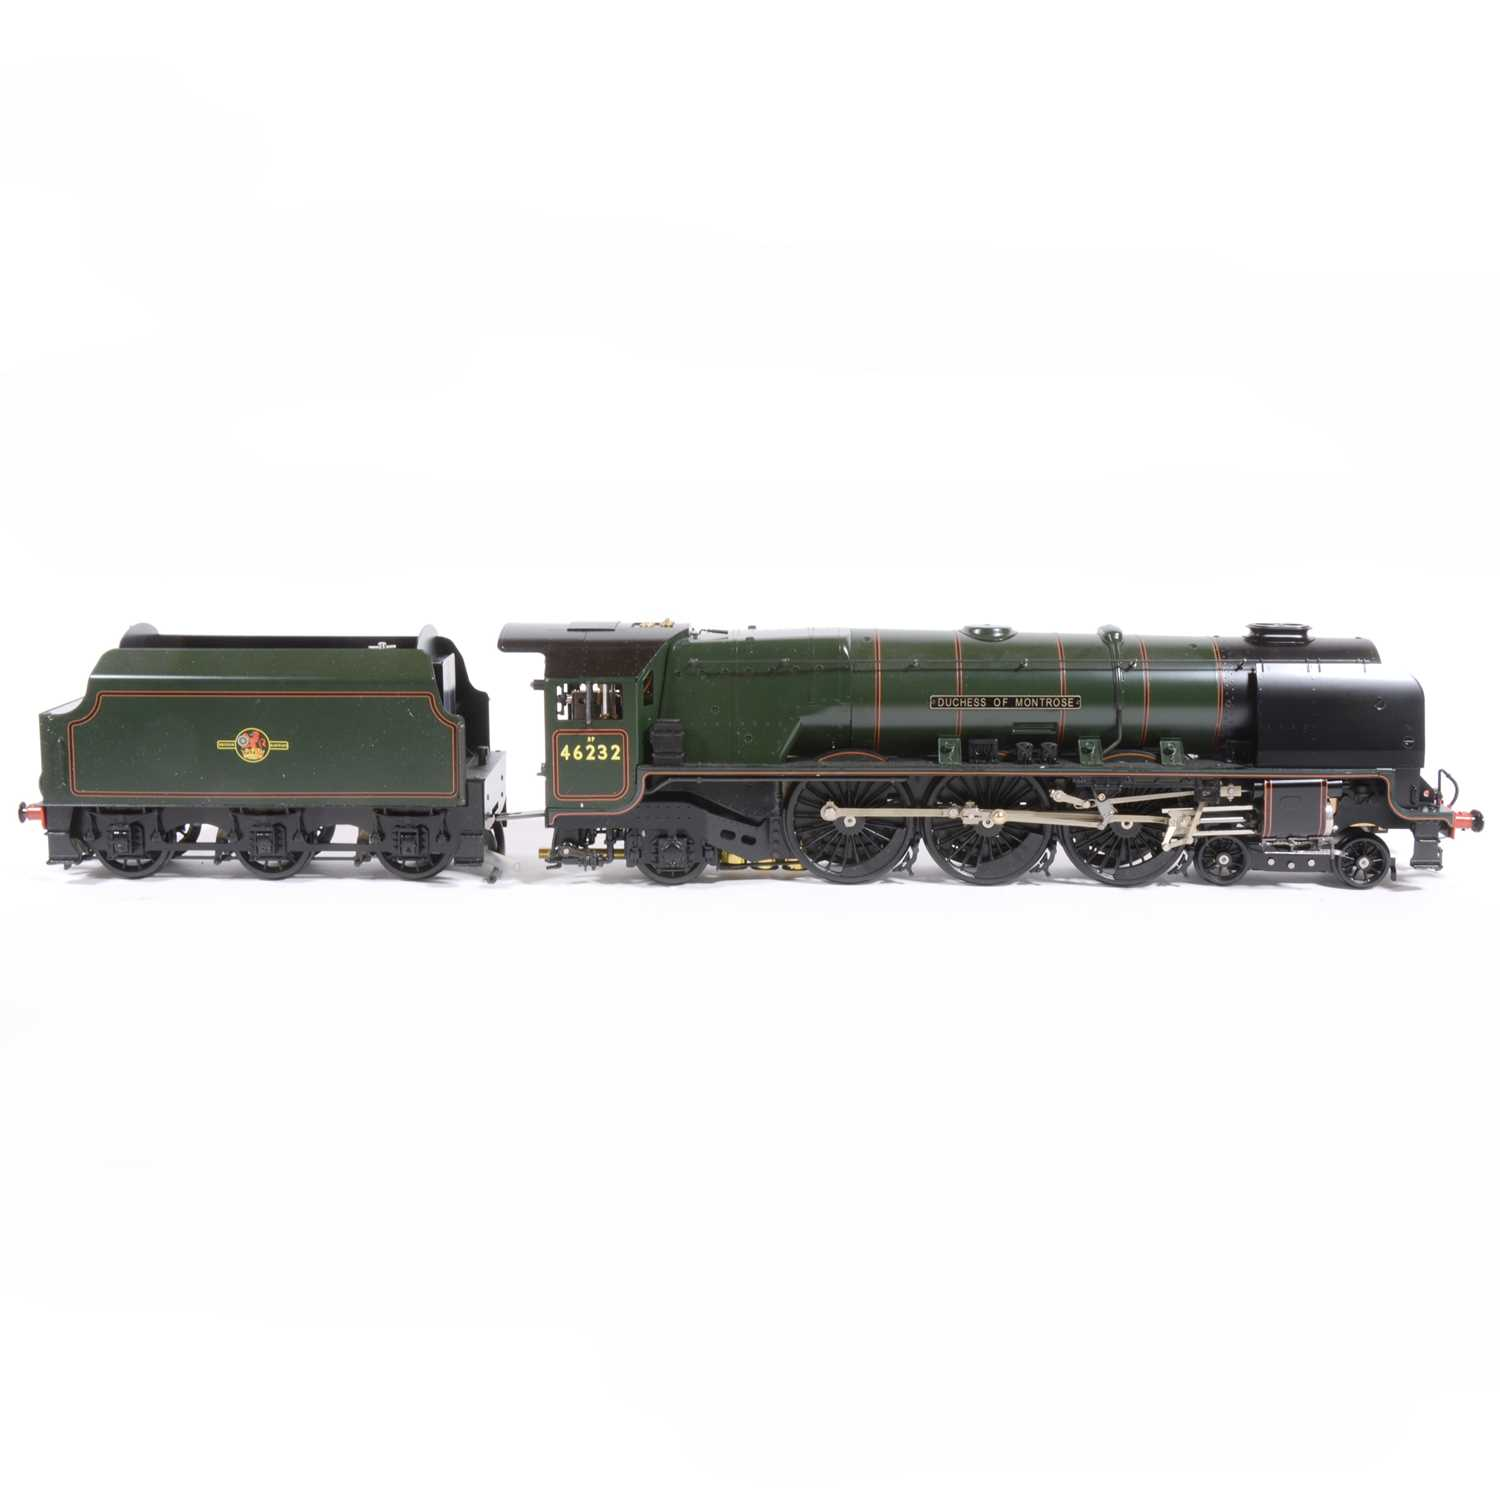 20 - Aster Hobby live steam, gauge 1 / G scale, 45mm locomotive and tender, 'Duchess of Montrose' 4-6-2 BR no.46232, in original packing, accessories and instructions.